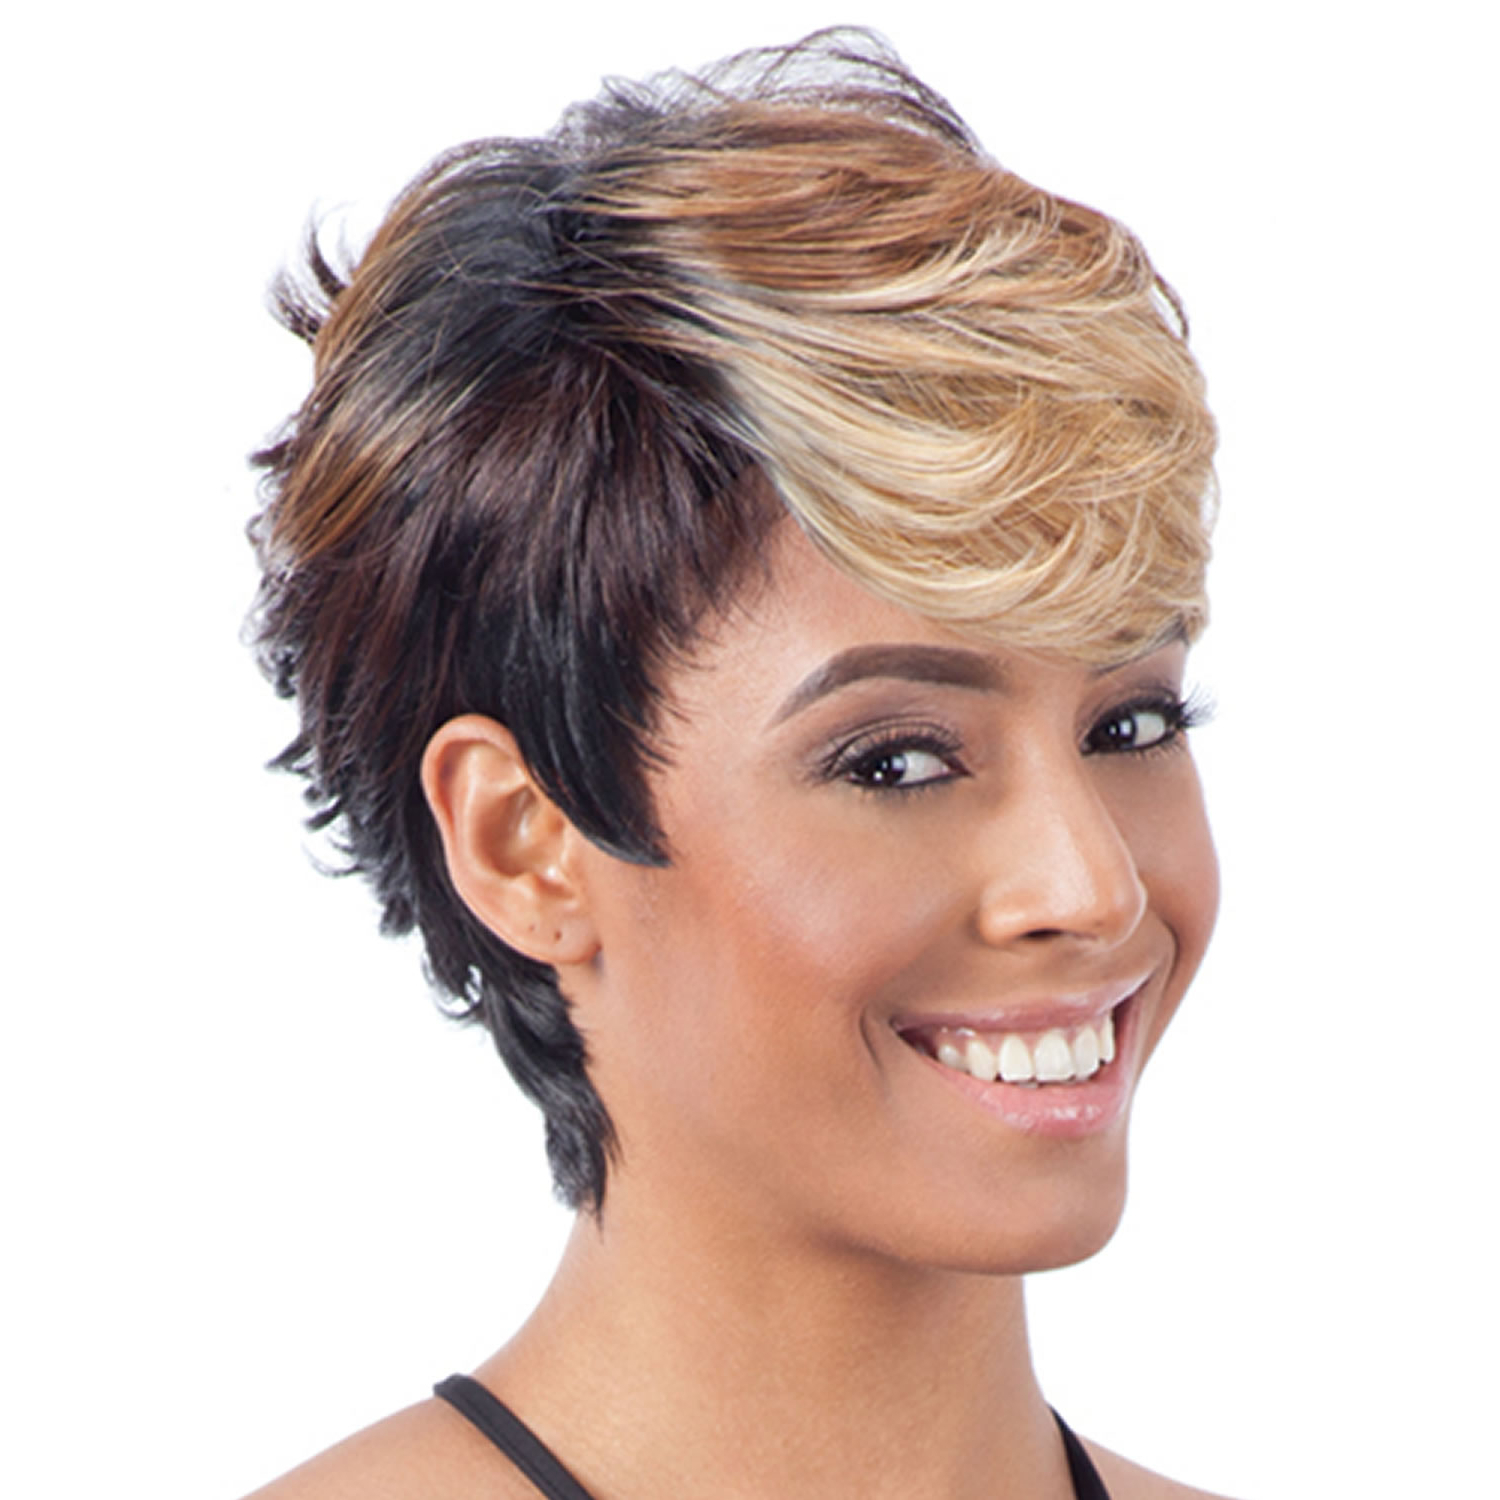 2018 Short Haircuts For Black Women – 57 Pixie Short Black Hair For Short Short Haircuts For Black Women (View 19 of 25)